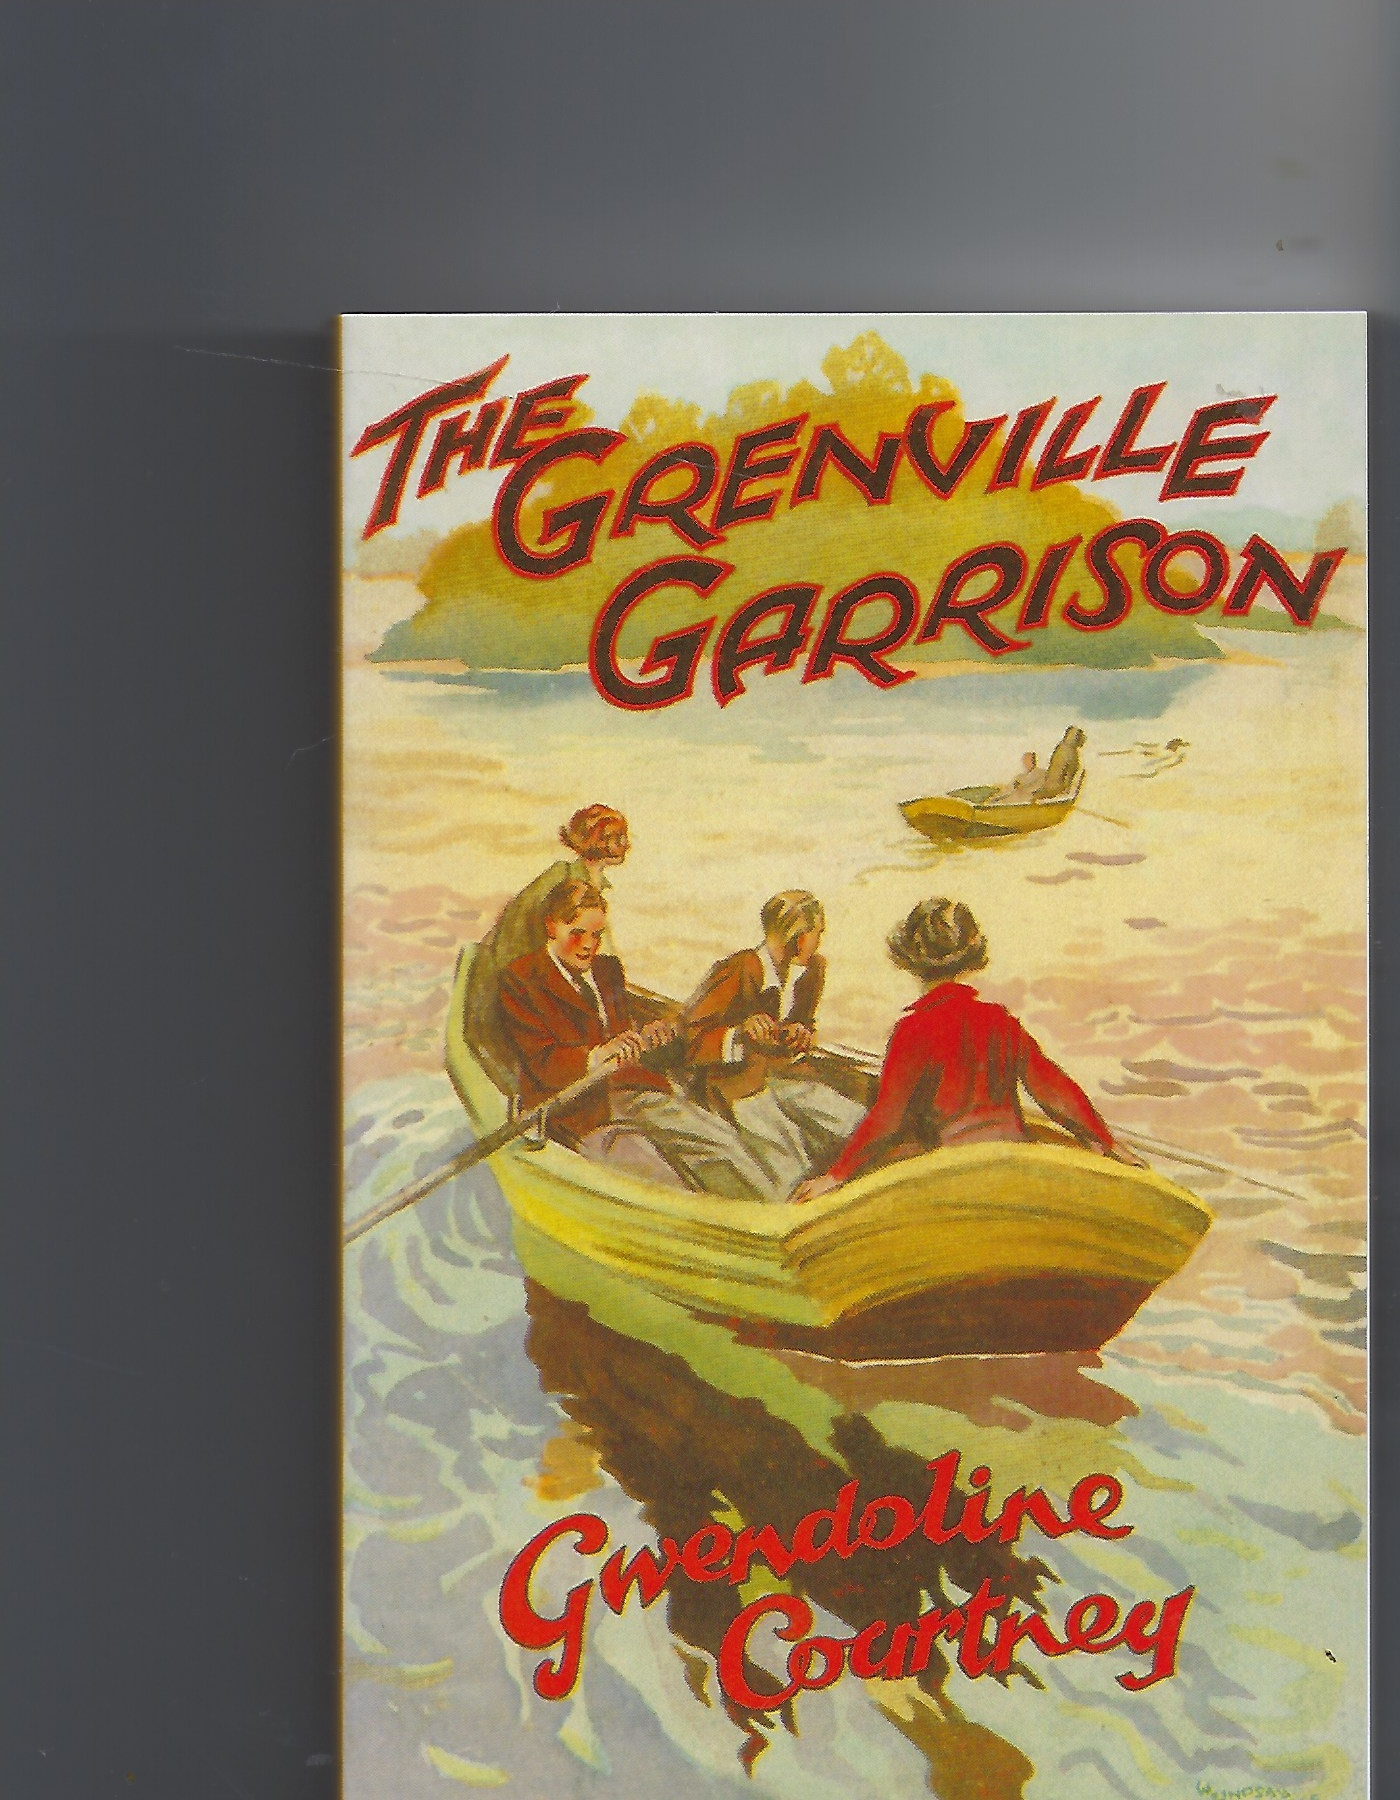 Image for The Grenville Garrison